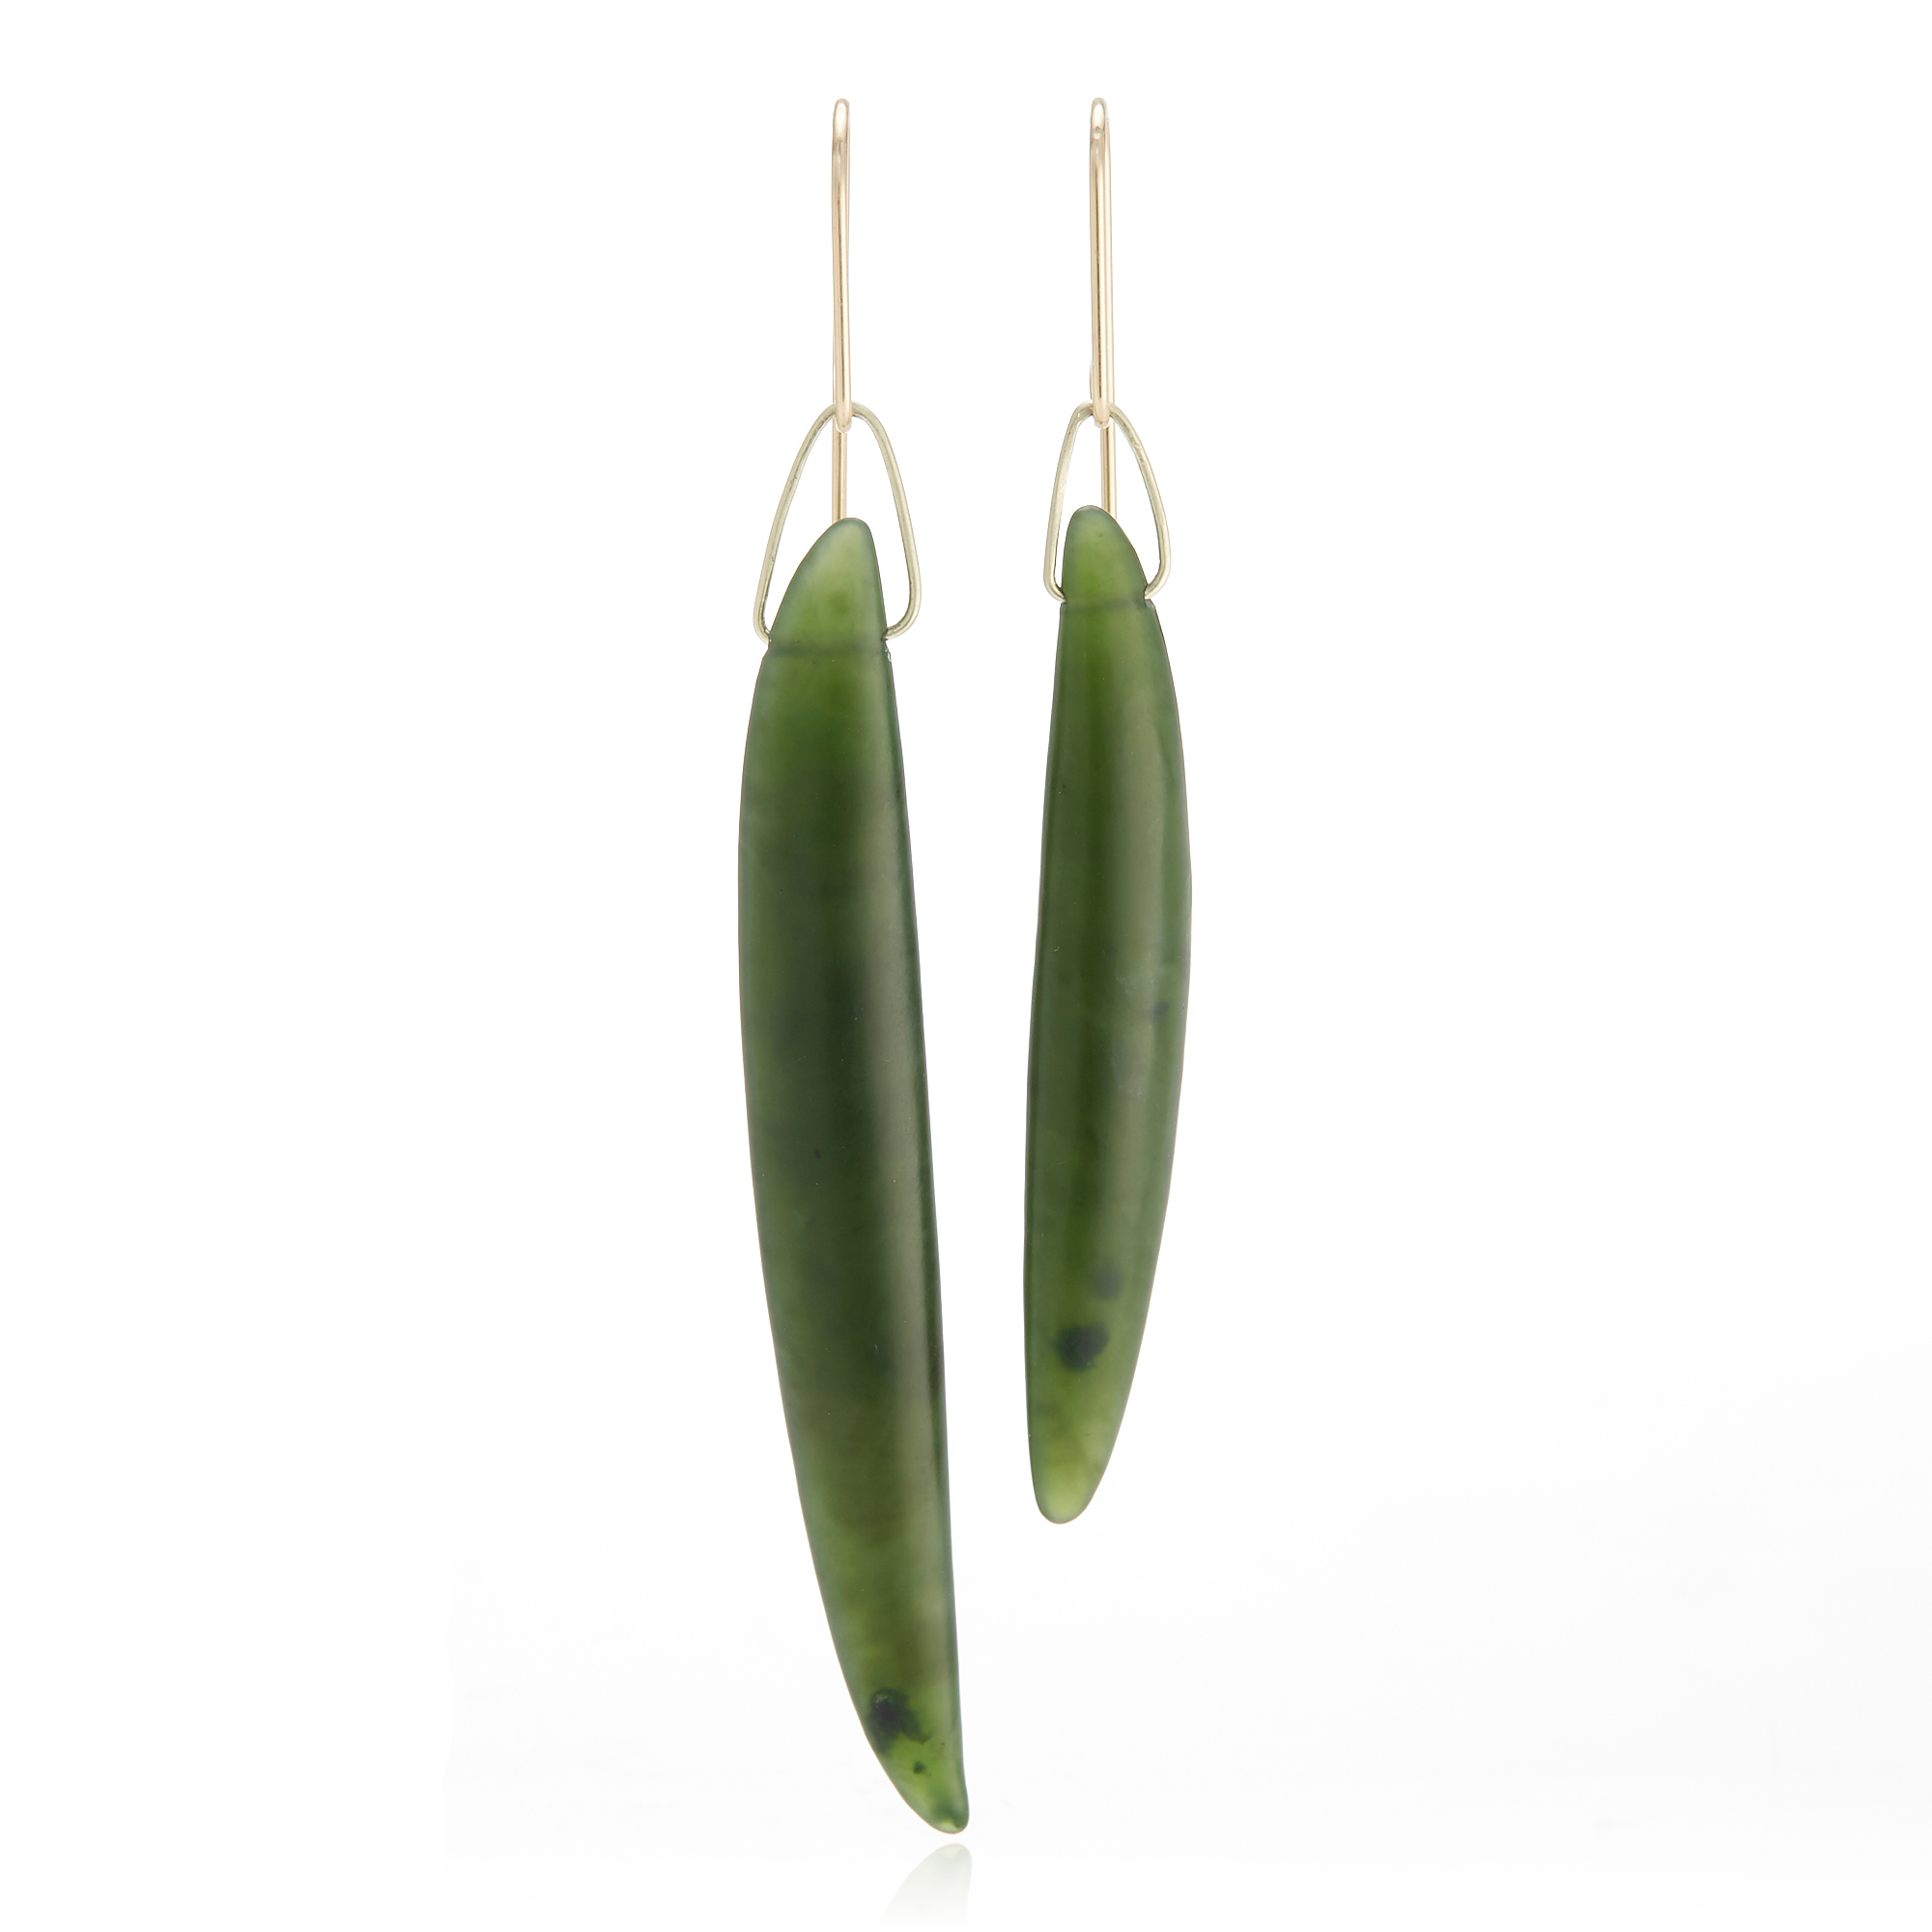 Gabriella Kiss Hand Carved Nephrite Jade Bean Earrings